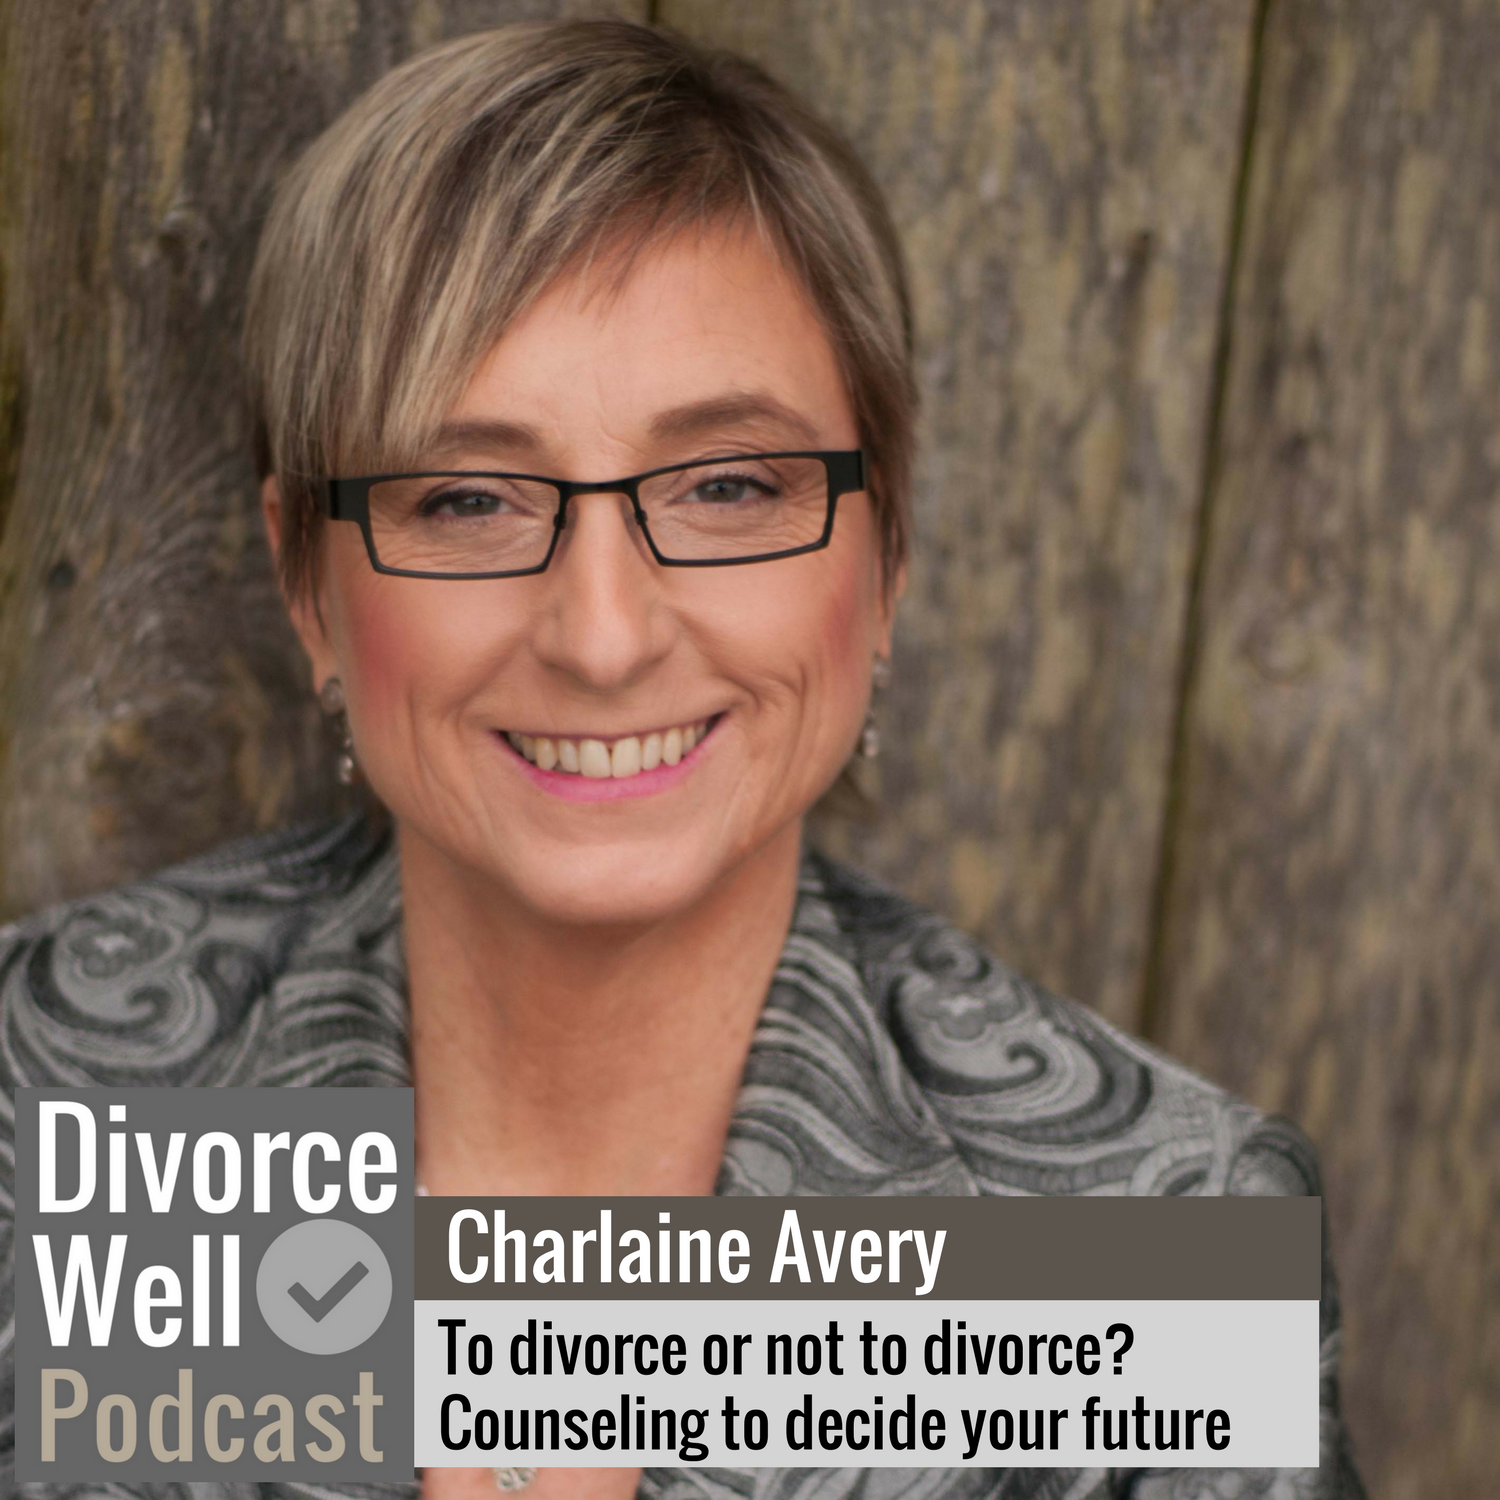 The Divorce Well Podcast - 07 - To divorce or not to divorce? Counseling to decide your future, with Charlaine Avery